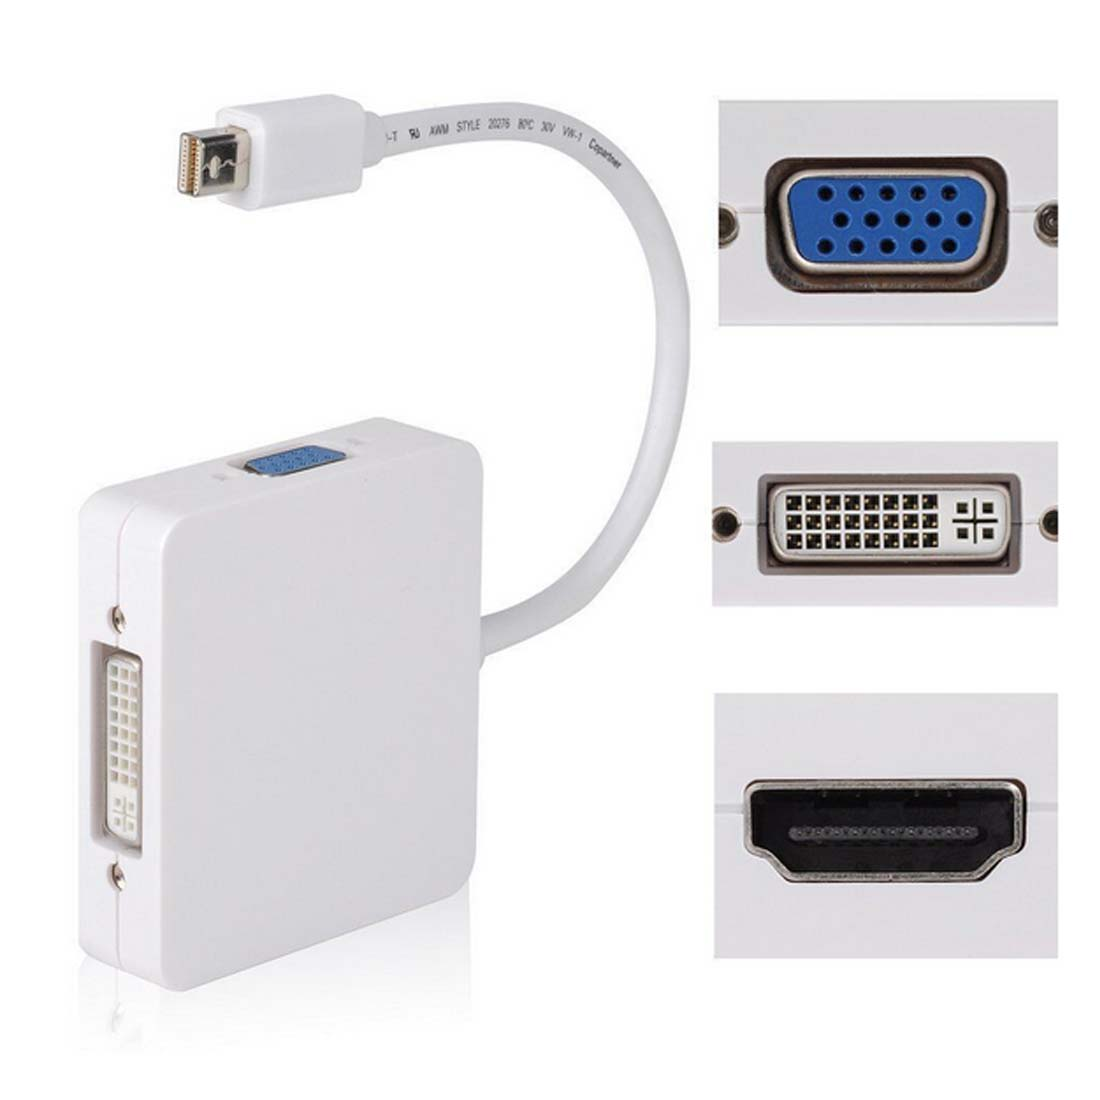 3 in1 Thunder bolt Mini Displayport DP to HDMI DVI VGA Adapter Display Port Cable for Apple Mac Book Pro Mac Book Air